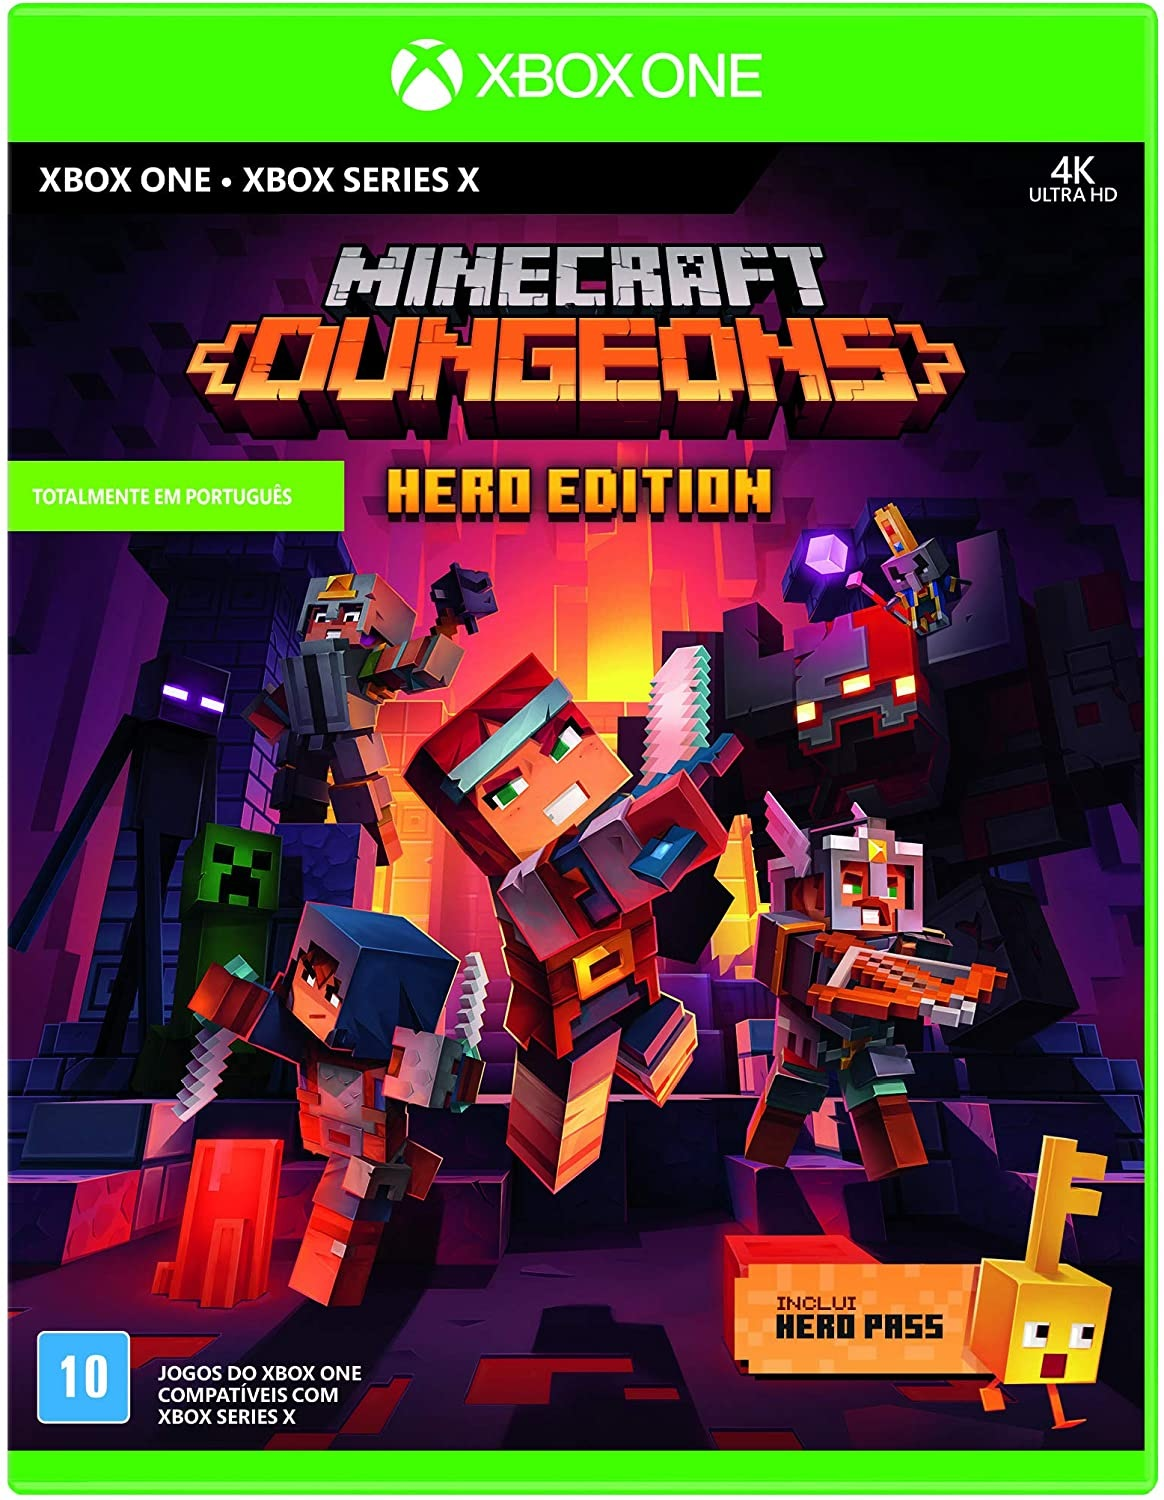 MINECRAFT DUNGEONS XBOX ONE-HERO EDITION (INCLUIDO HERO PASS)